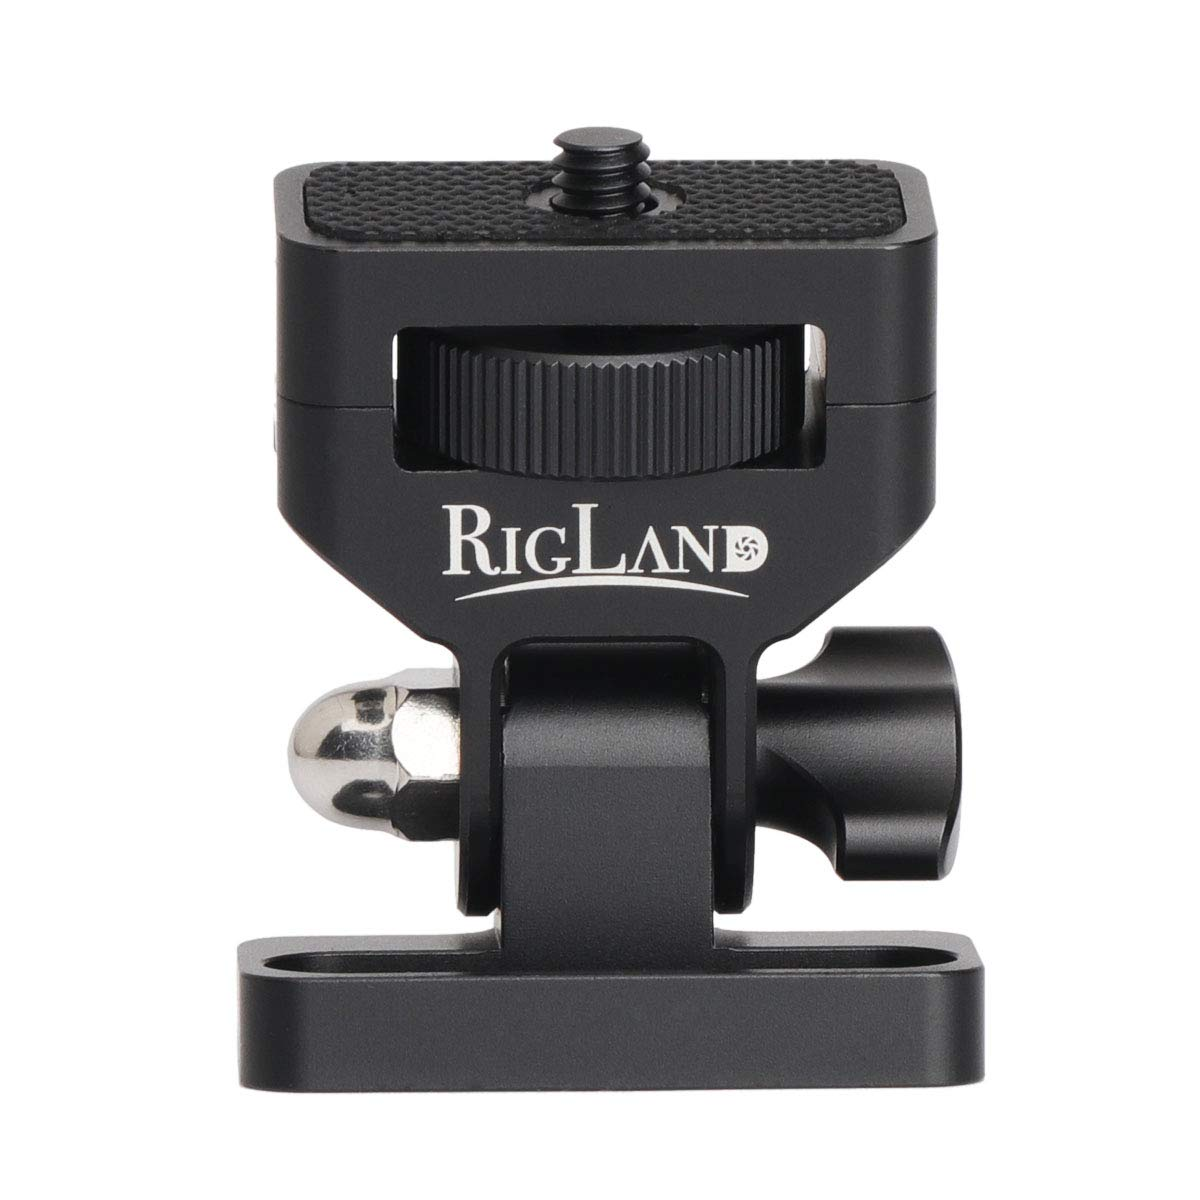 RigLand Camera Monitor Mount, Monitor Holder with 180° Friction for Camera Field Monitor - 680 by RigLand